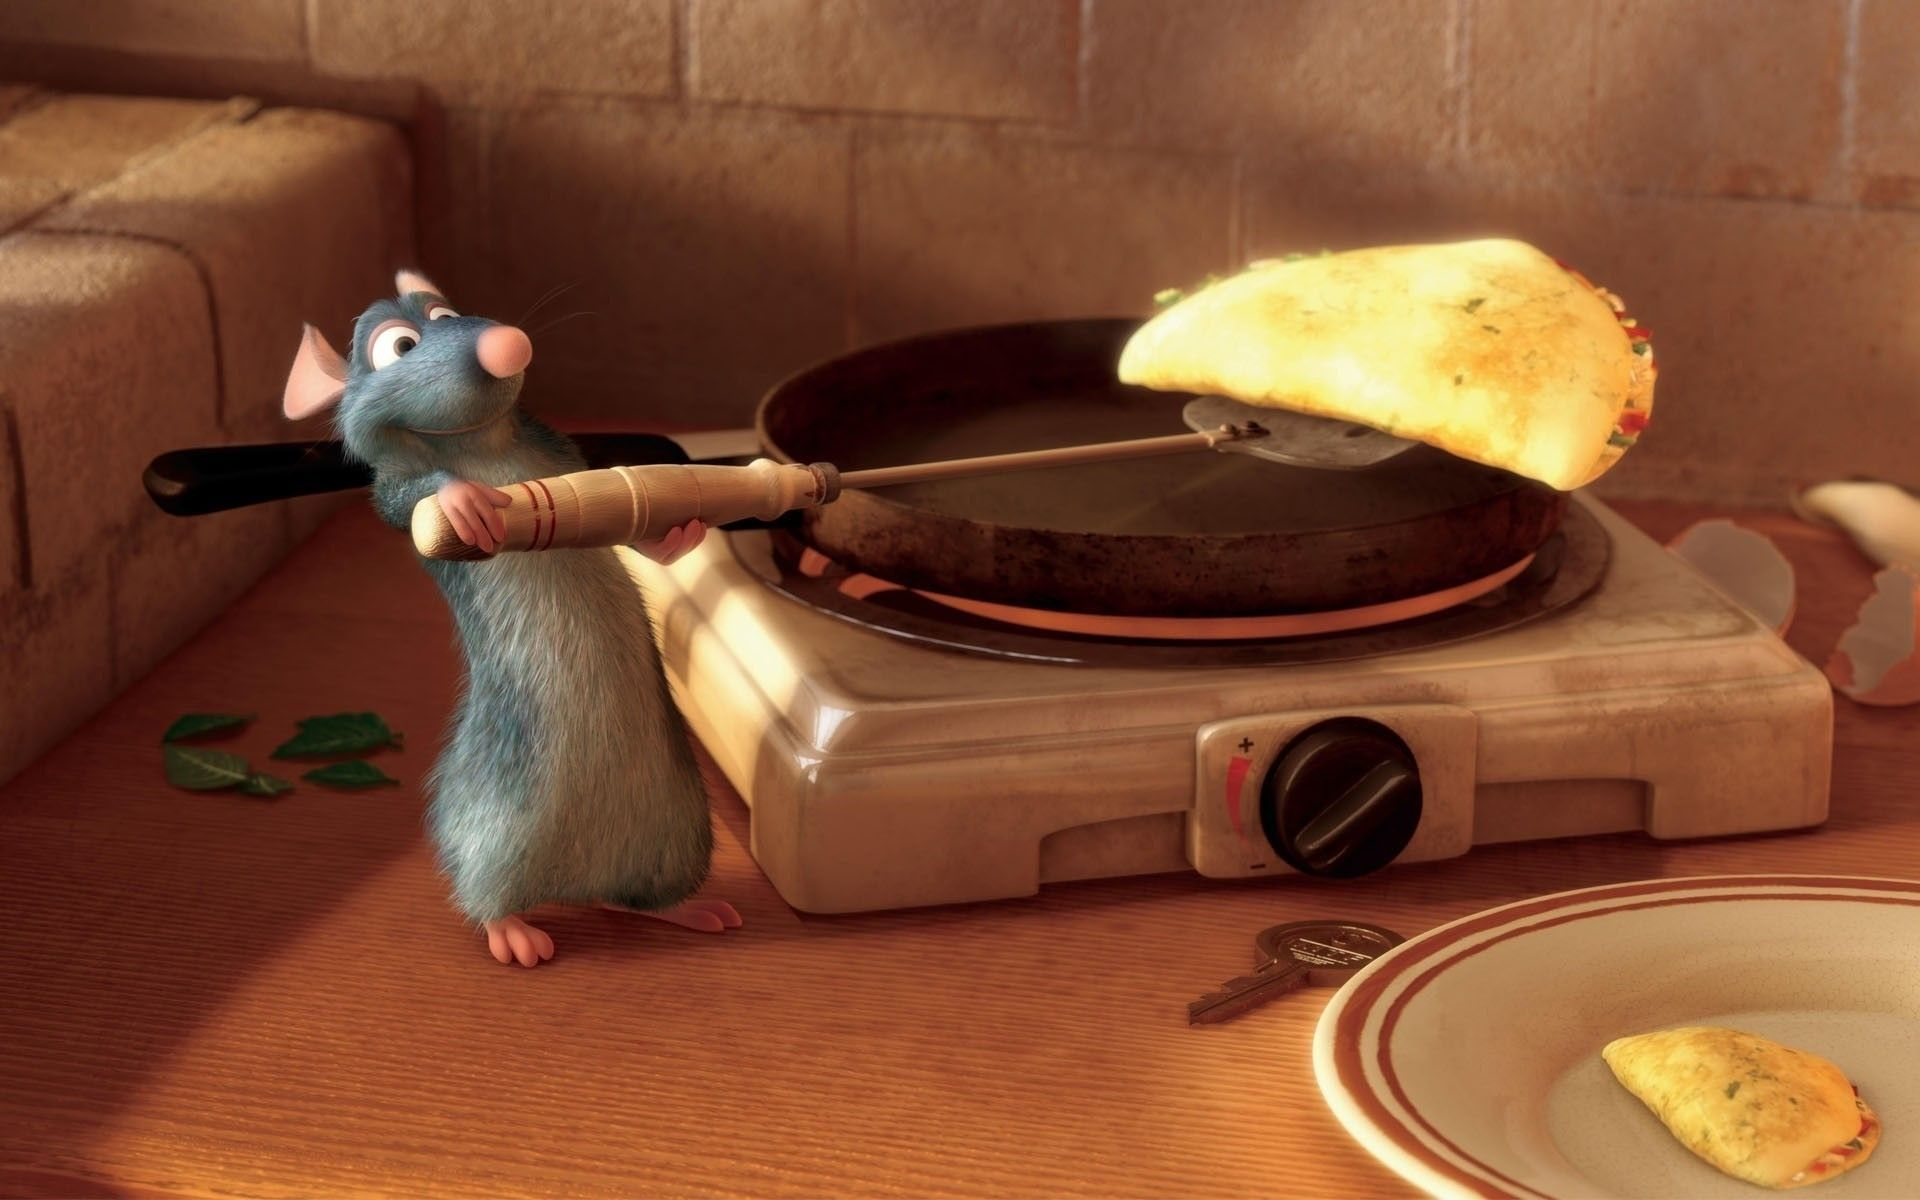 Ratatouille 1920x1200 Wallpapers, 1920x1200 Wallpapers &amp- Pictures ...